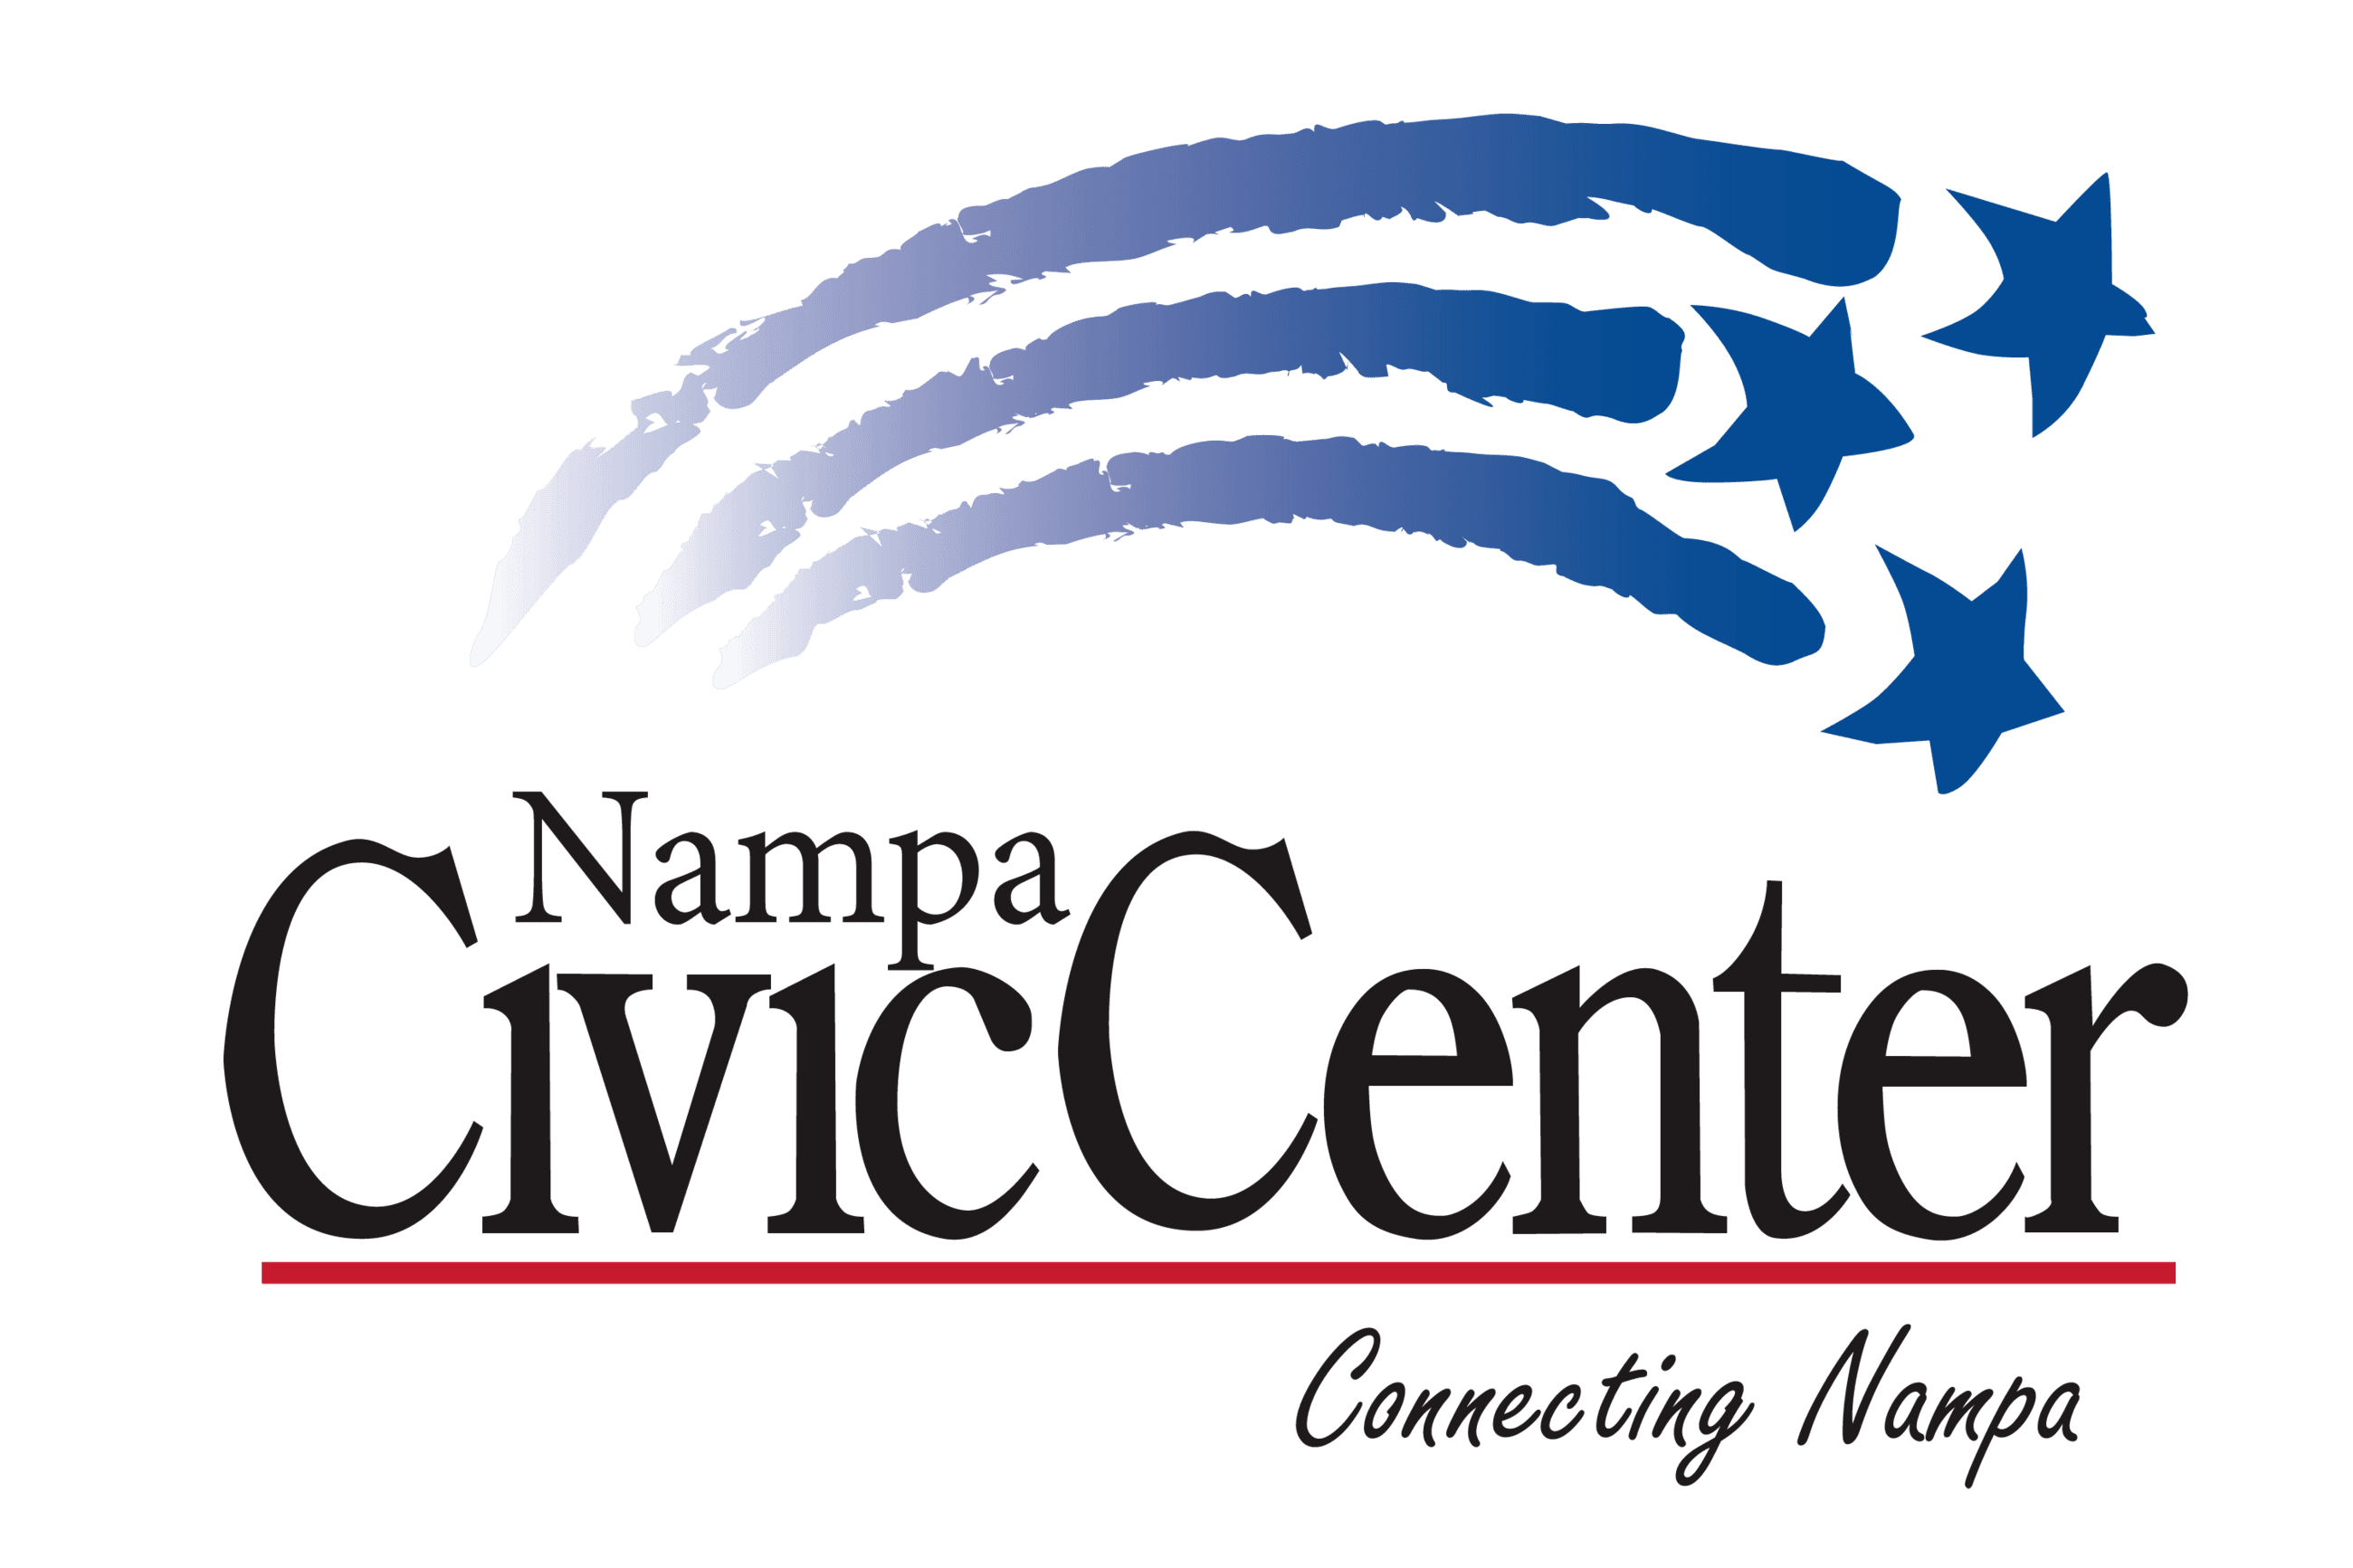 Nampa Civic Center Logo